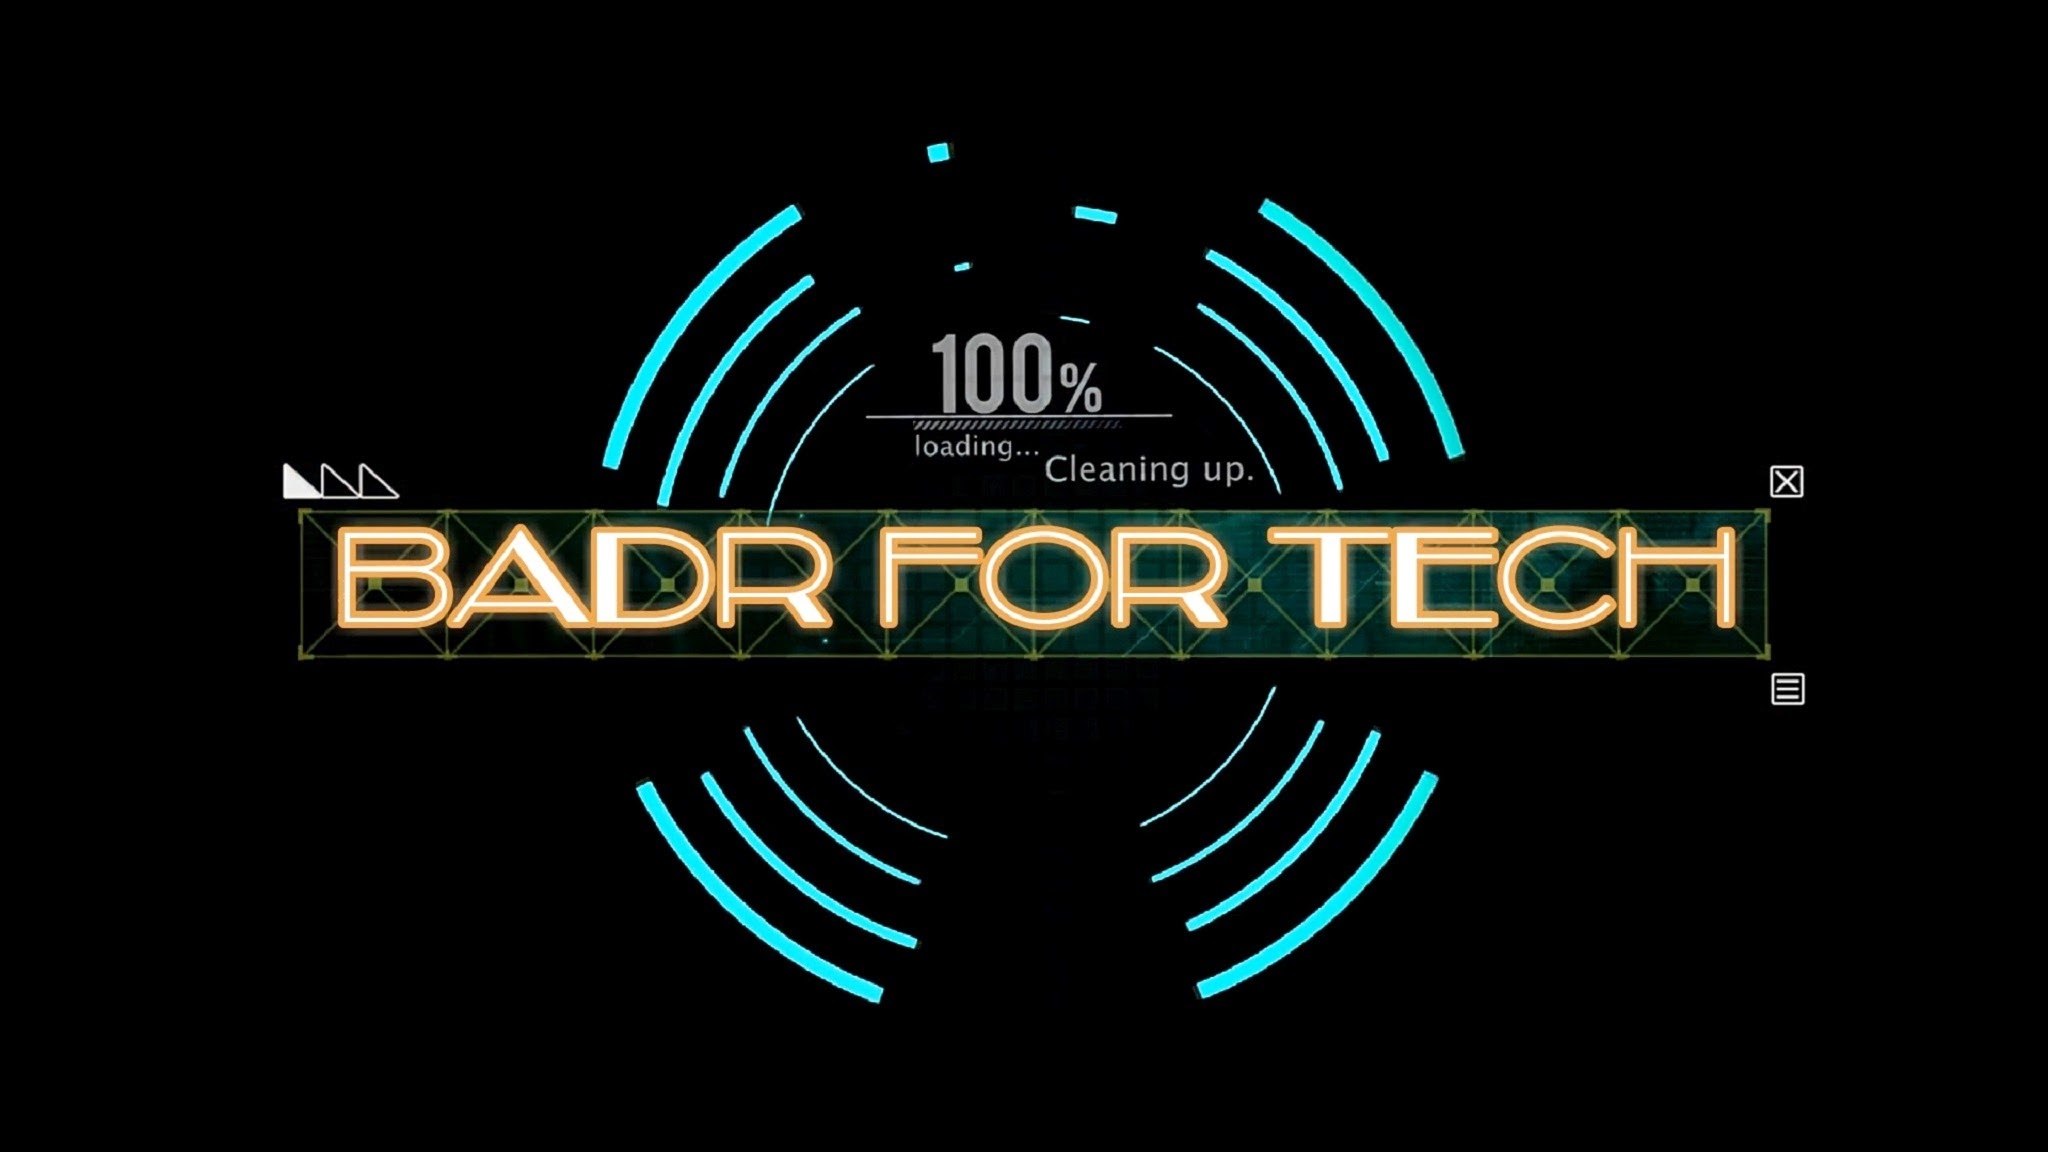 Badr For Tech